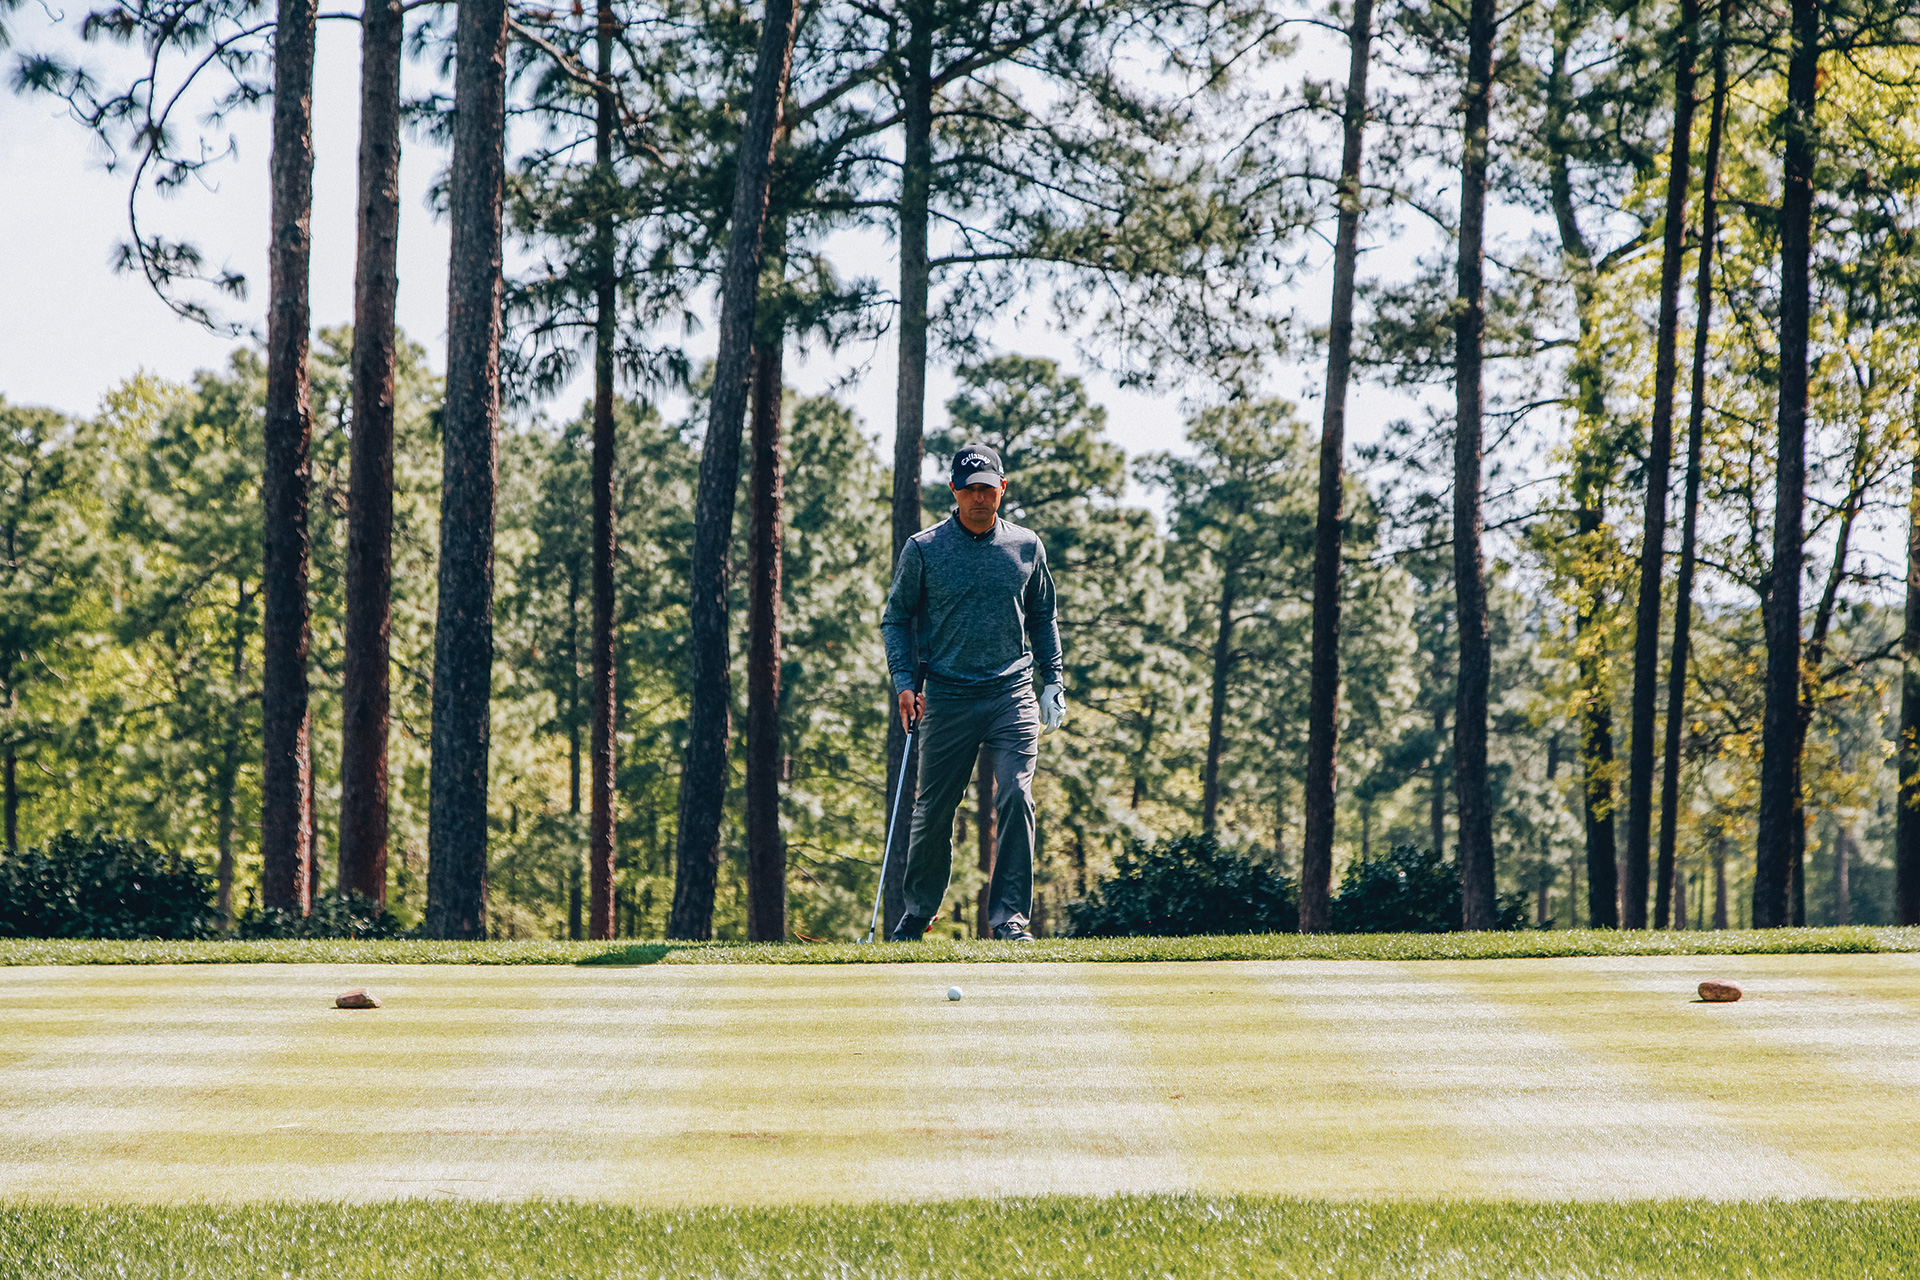 Golfer approaching ball on putting green